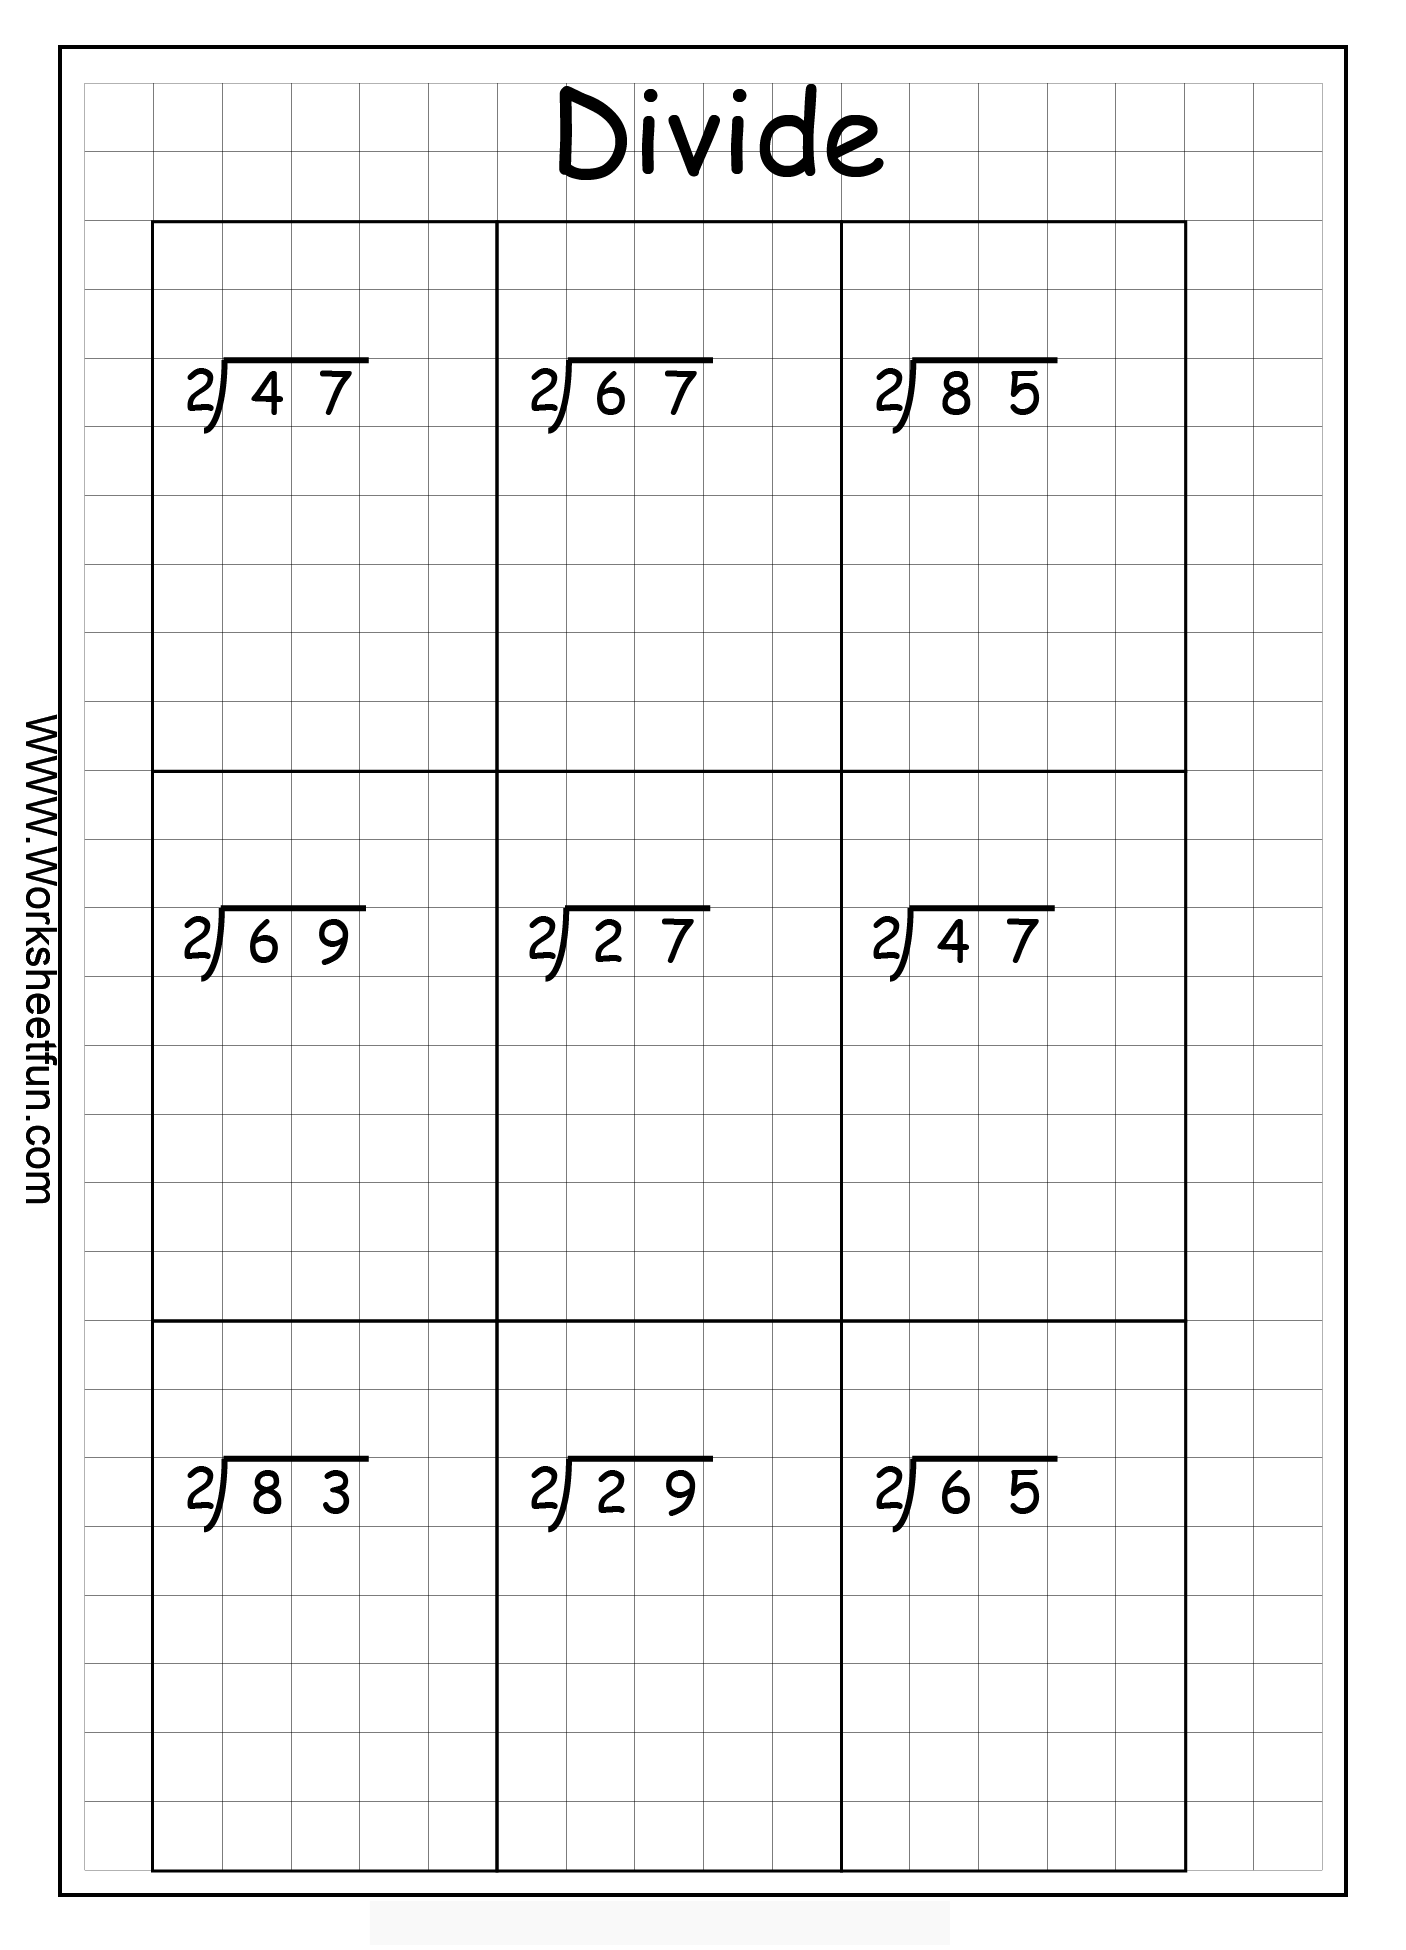 Long Division 2 Digits By 1 Digit With Remainder